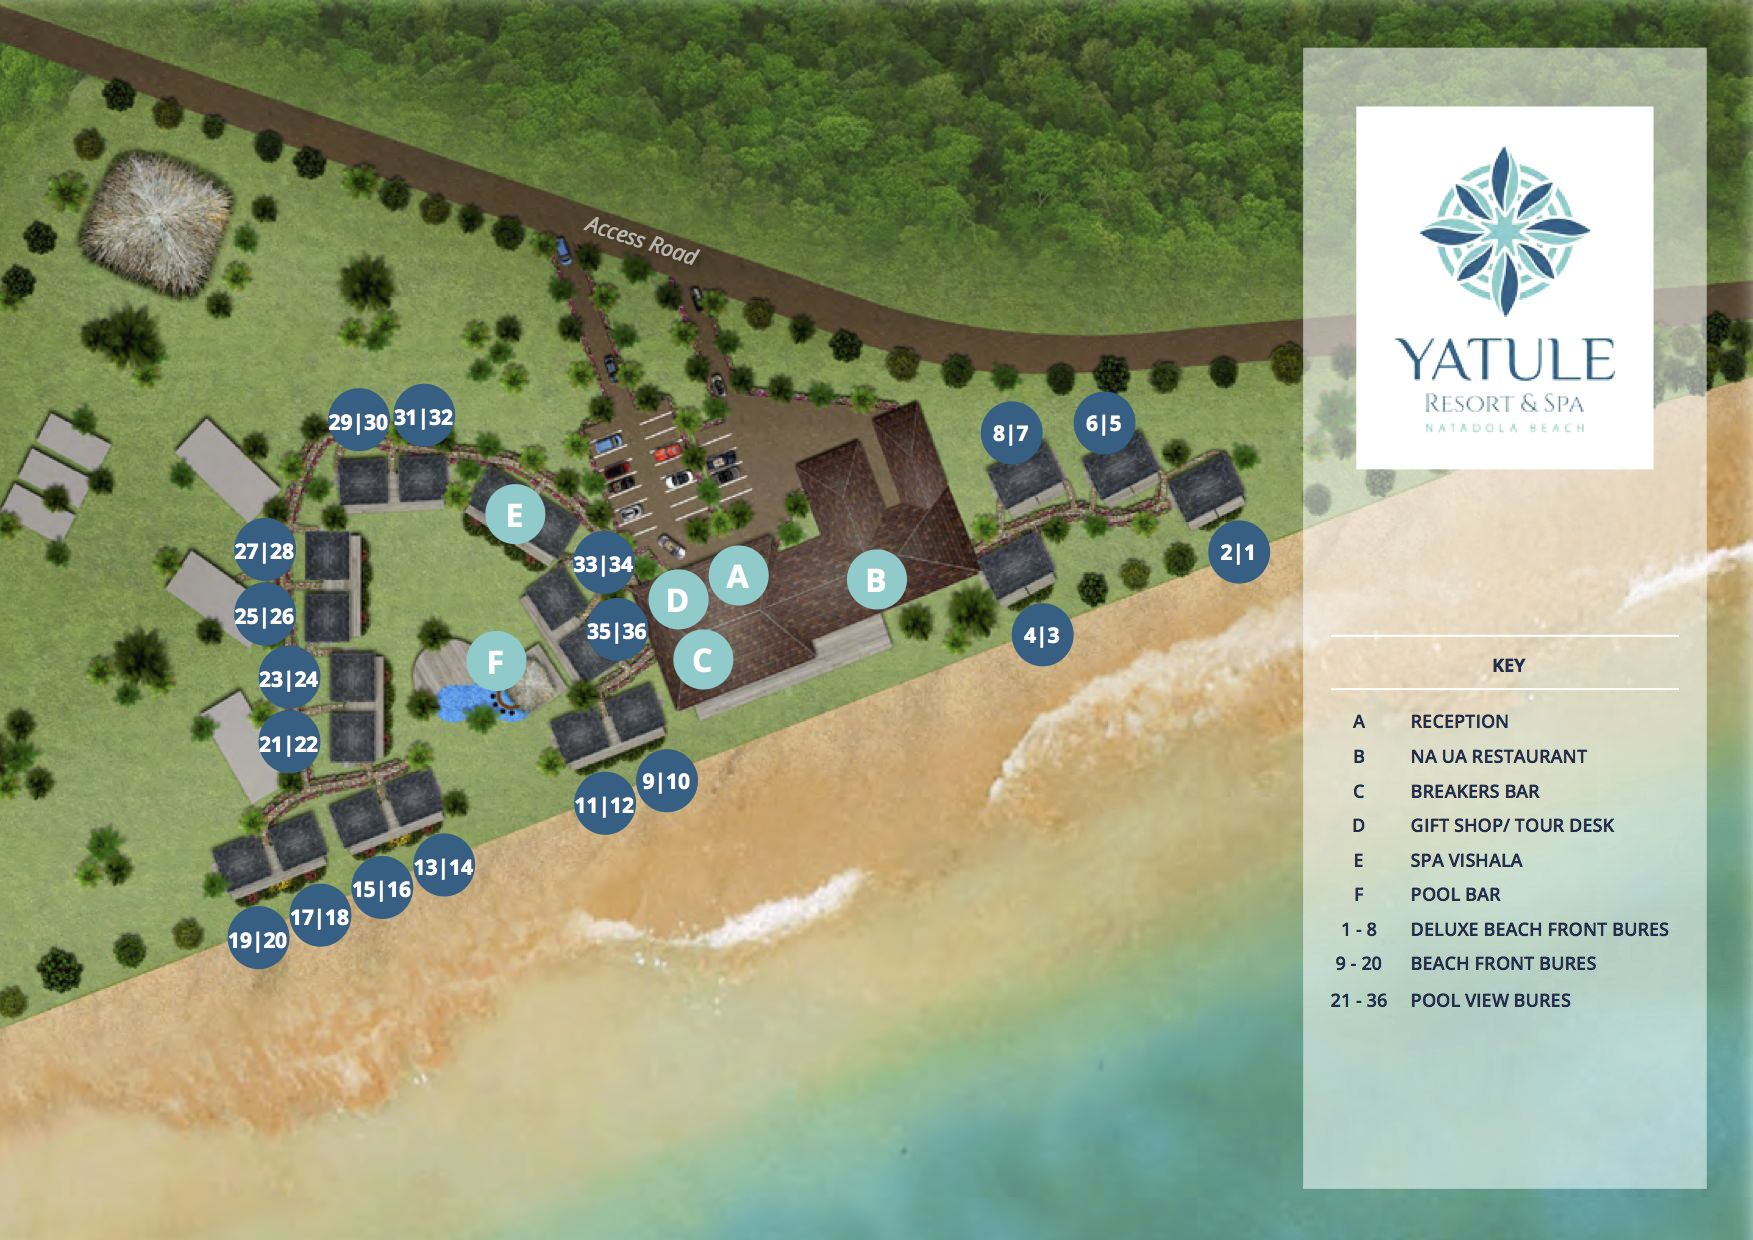 Champagne by the sea at Yatule Resort